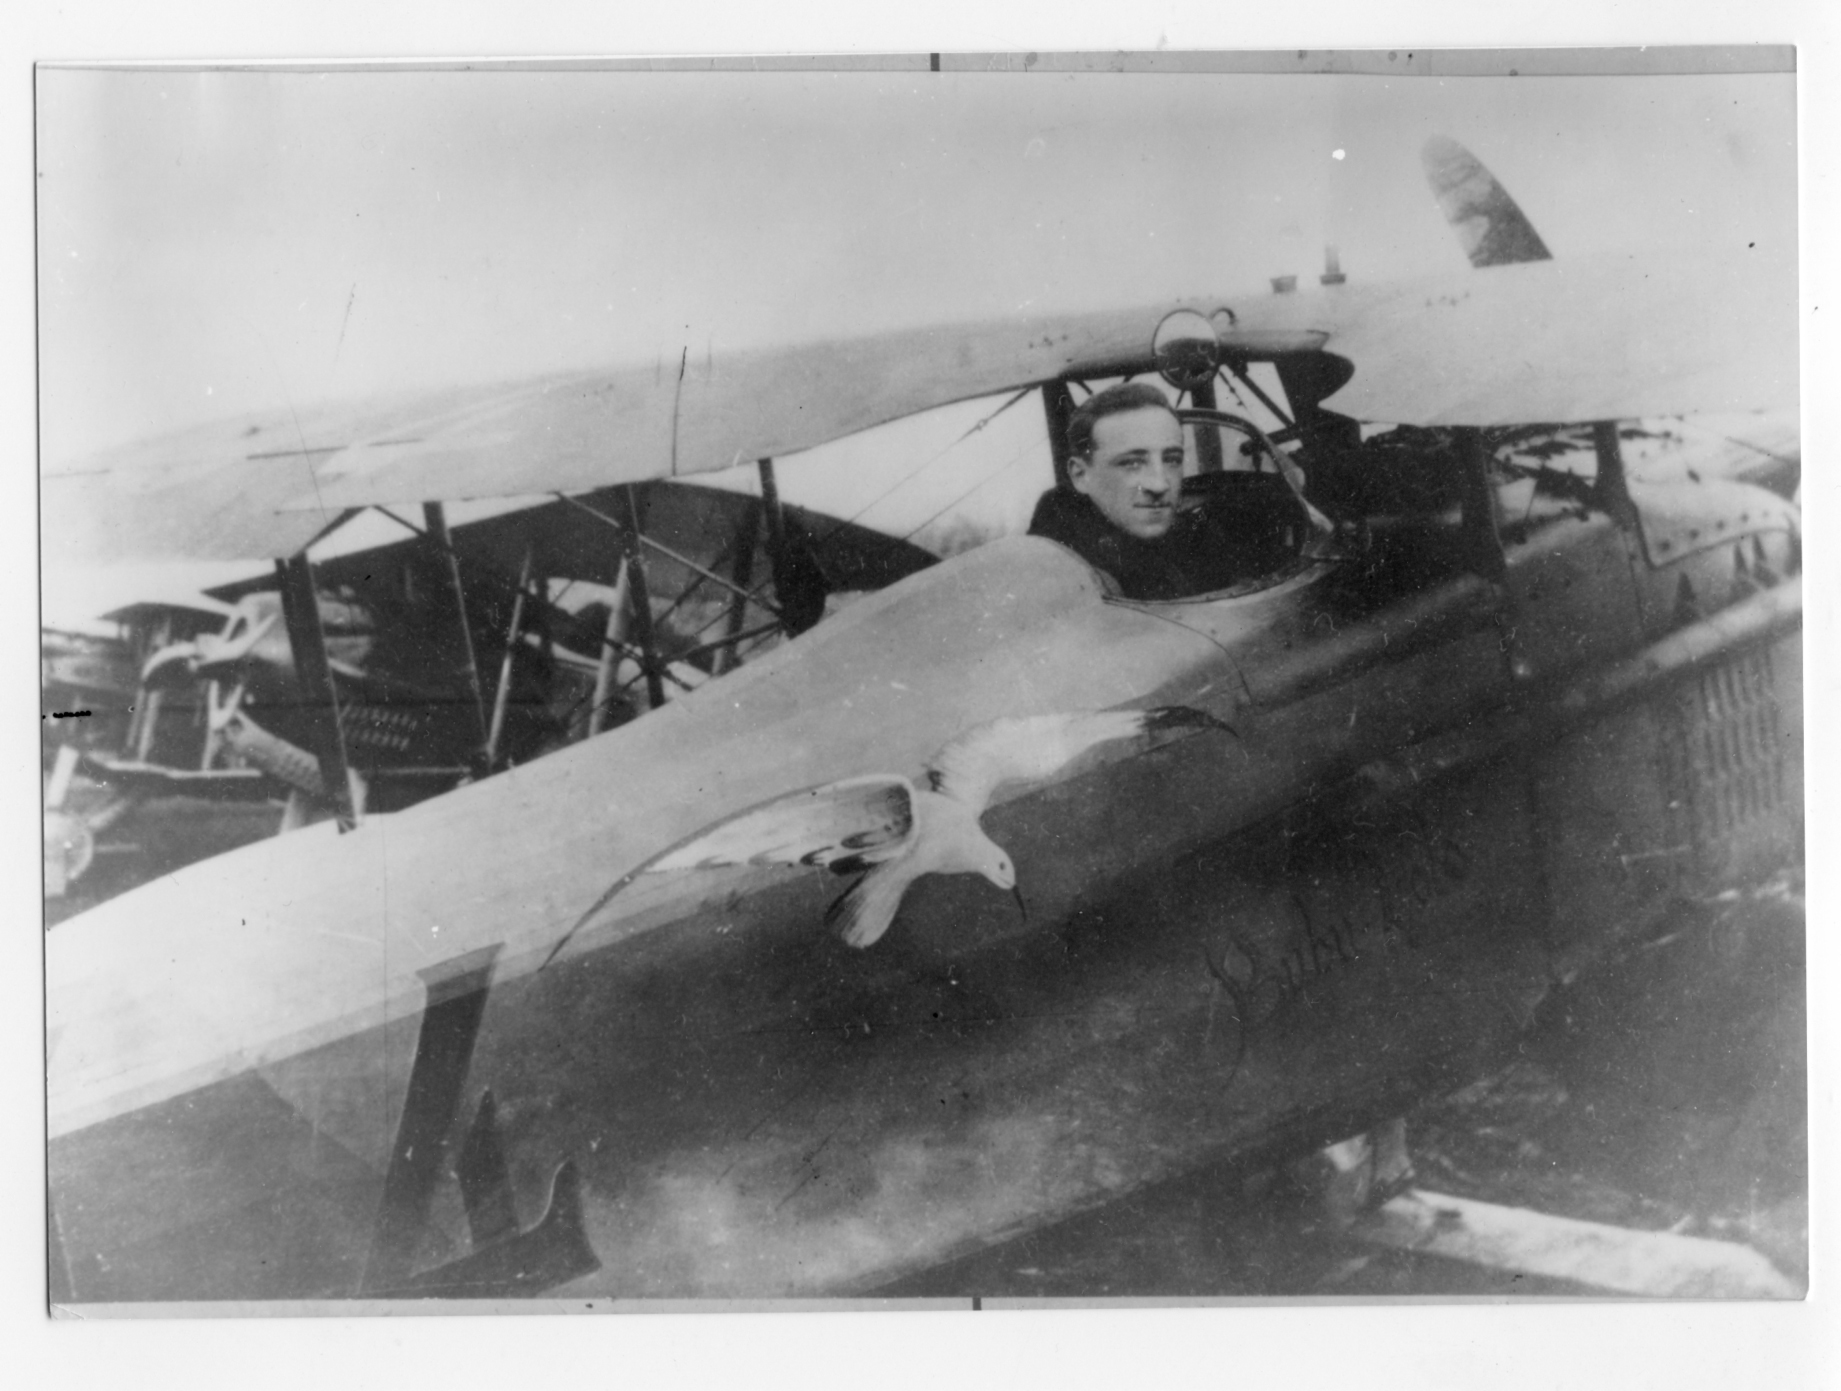 Adjutant Eug ène Butscher of escadrille N.151 in a Spad VII. On August 21, 1917 he downed an enemy plane near Burnhaupt for the unit`s first victory, but scored no more before his evacuation to hospital on August 7, 1918. (Service Historique de Defense, Air B82-4377)